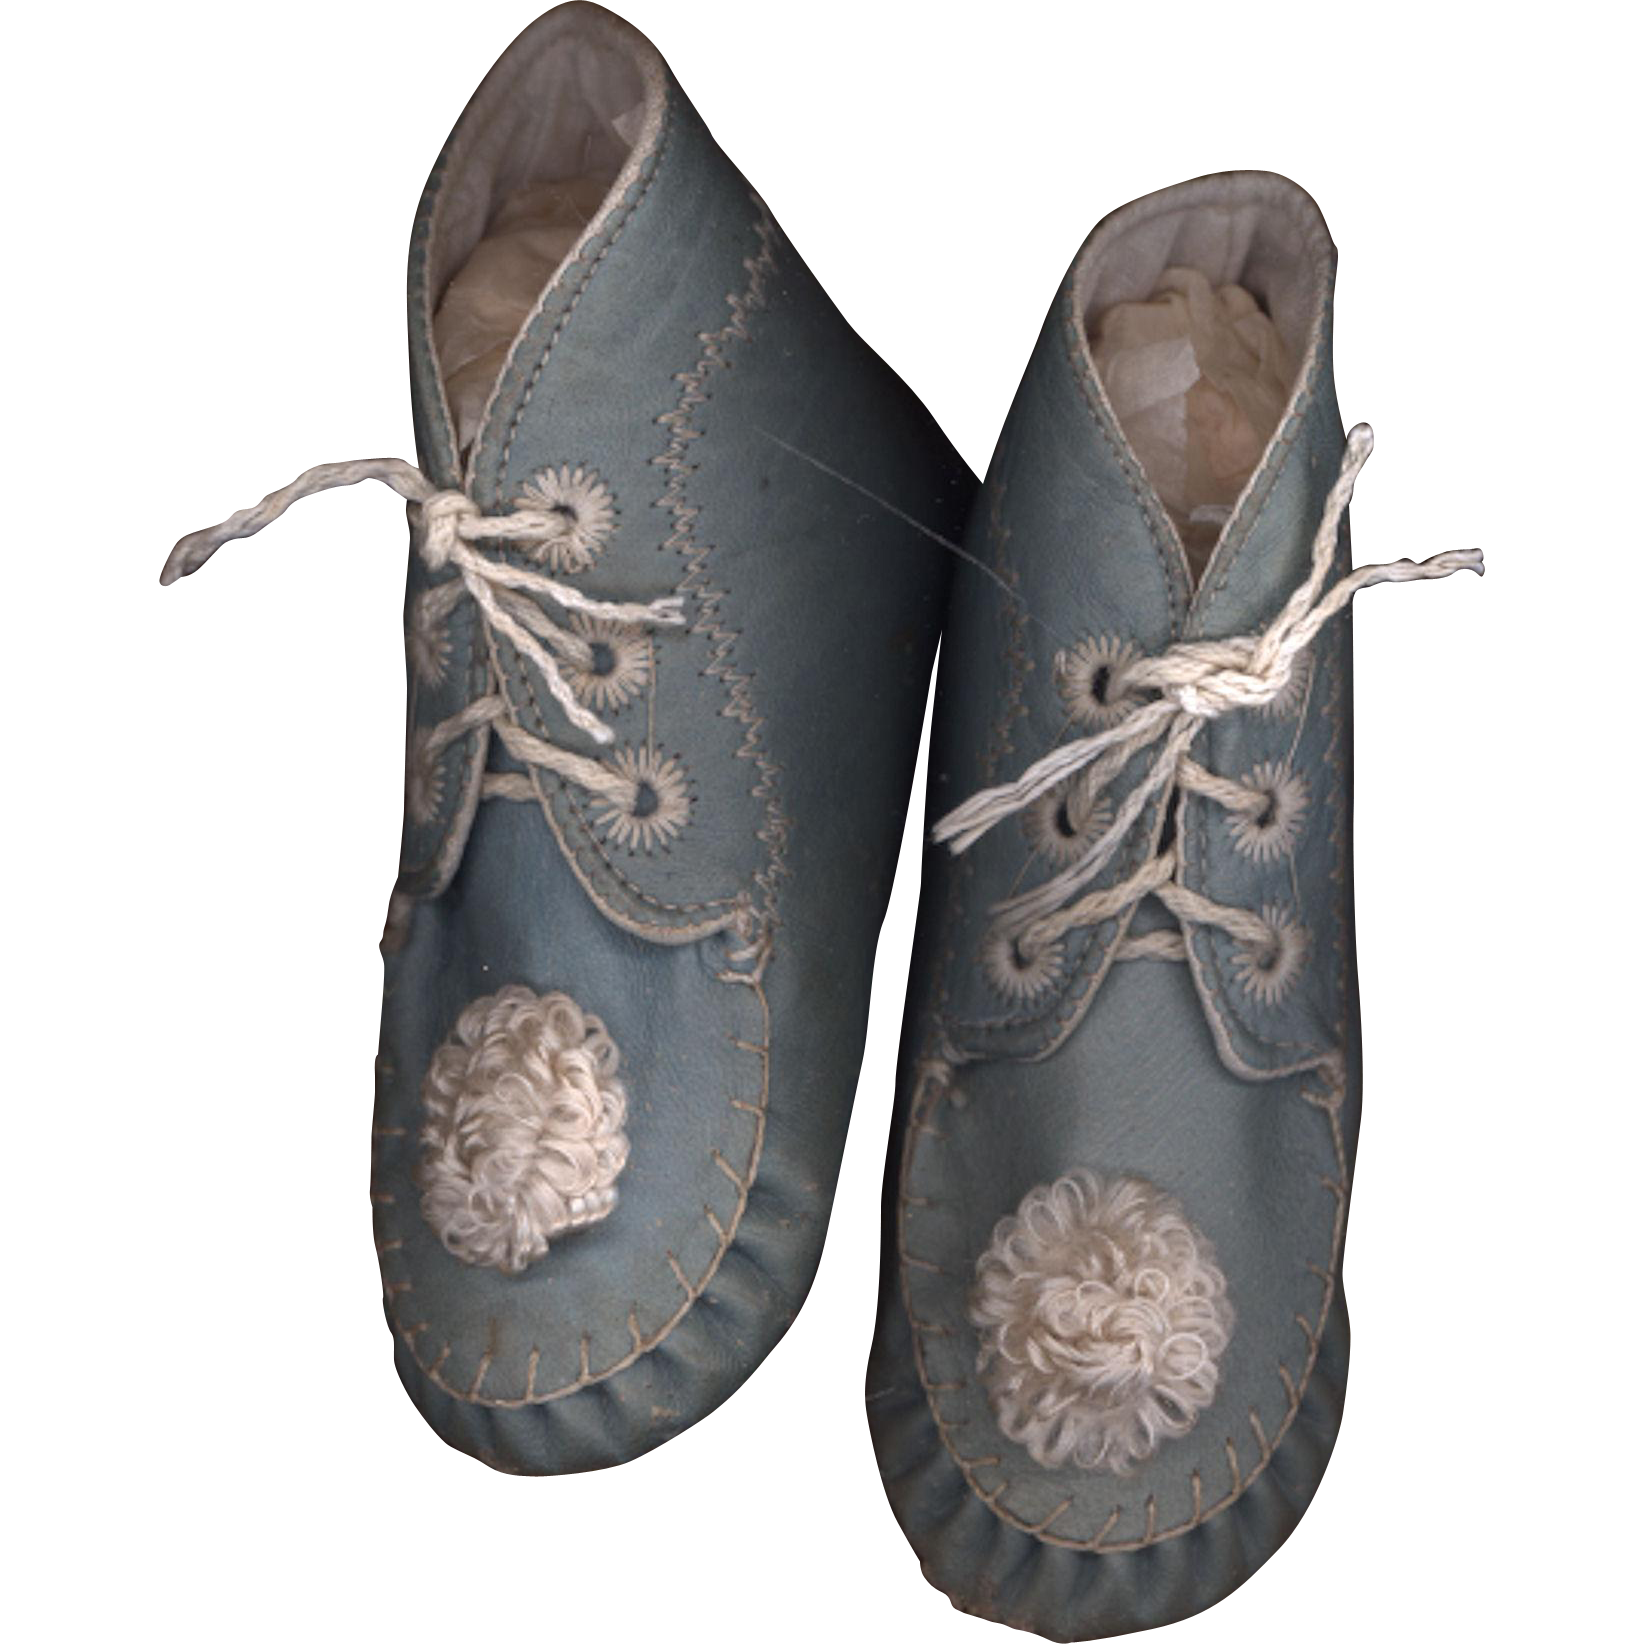 antique blue leather baby shoes from rubylane sold on ruby